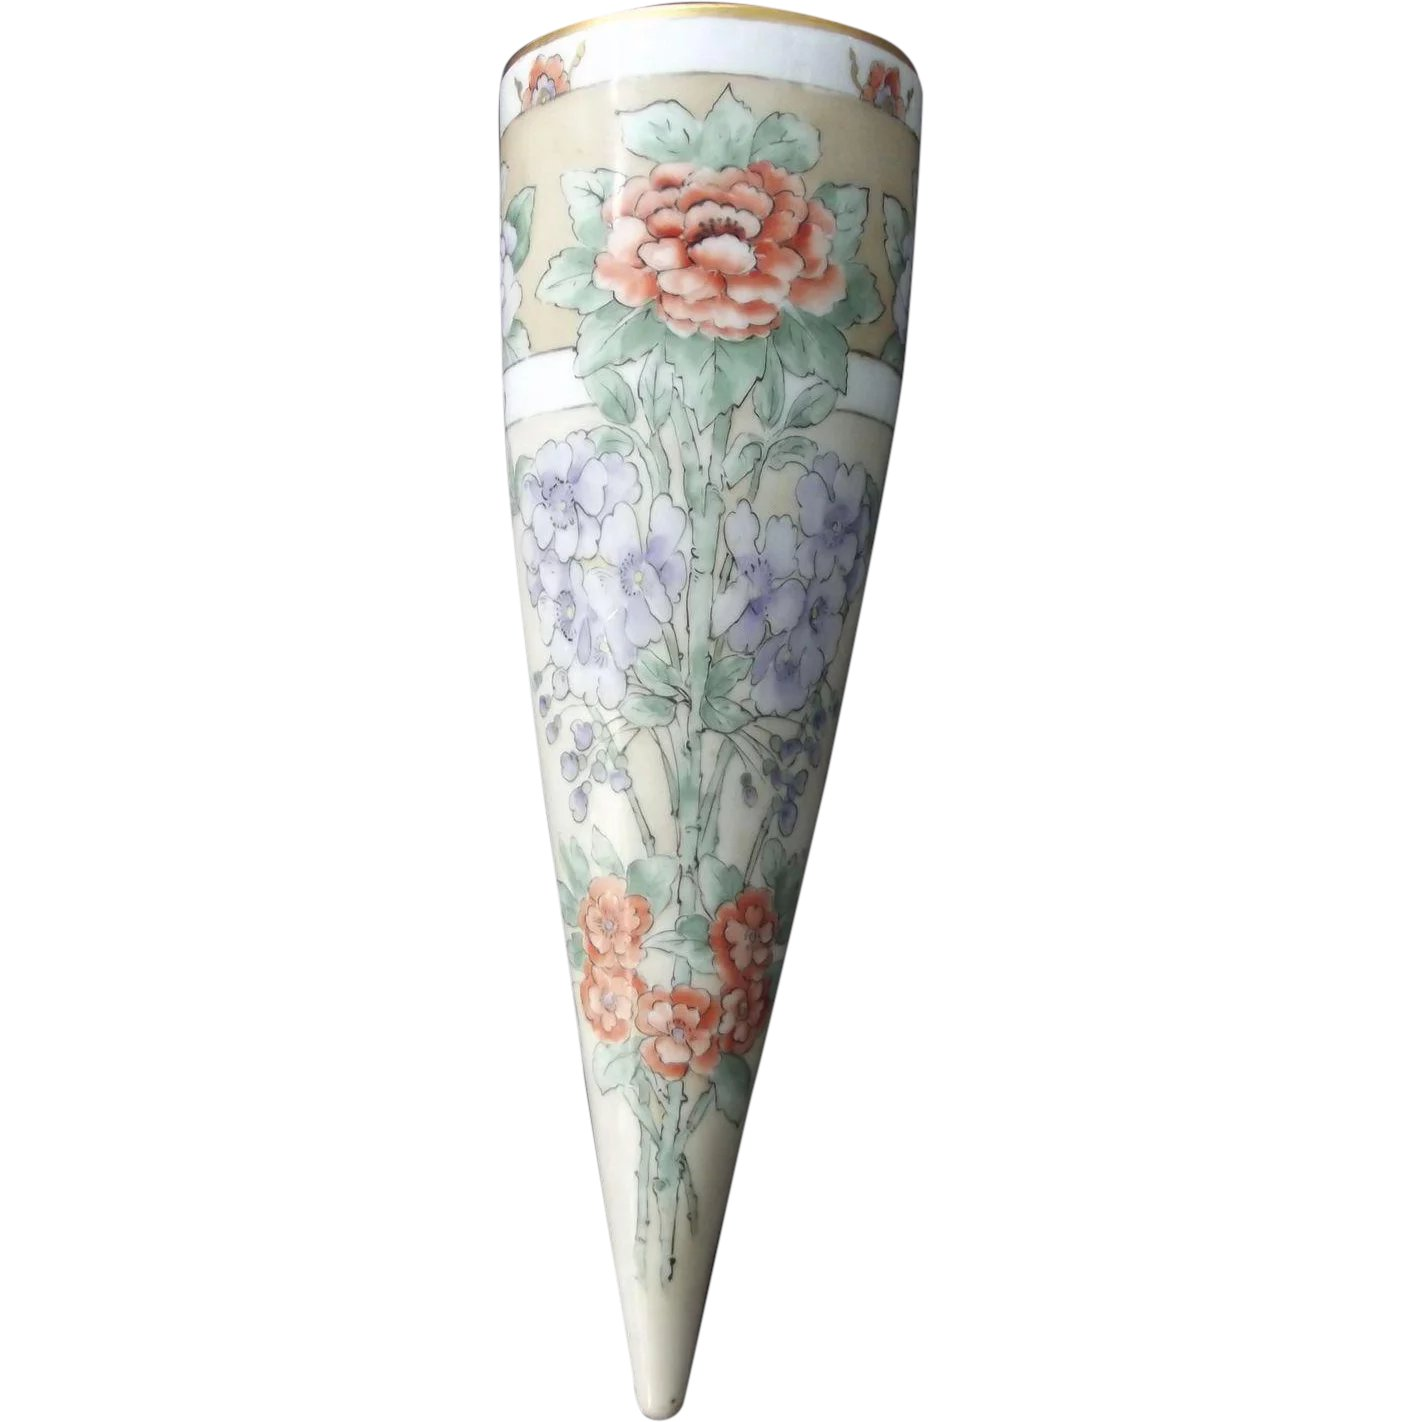 sc 1 st  Ruby Lane & Early Flower Vase For Car : From Here To Victorian | Ruby Lane